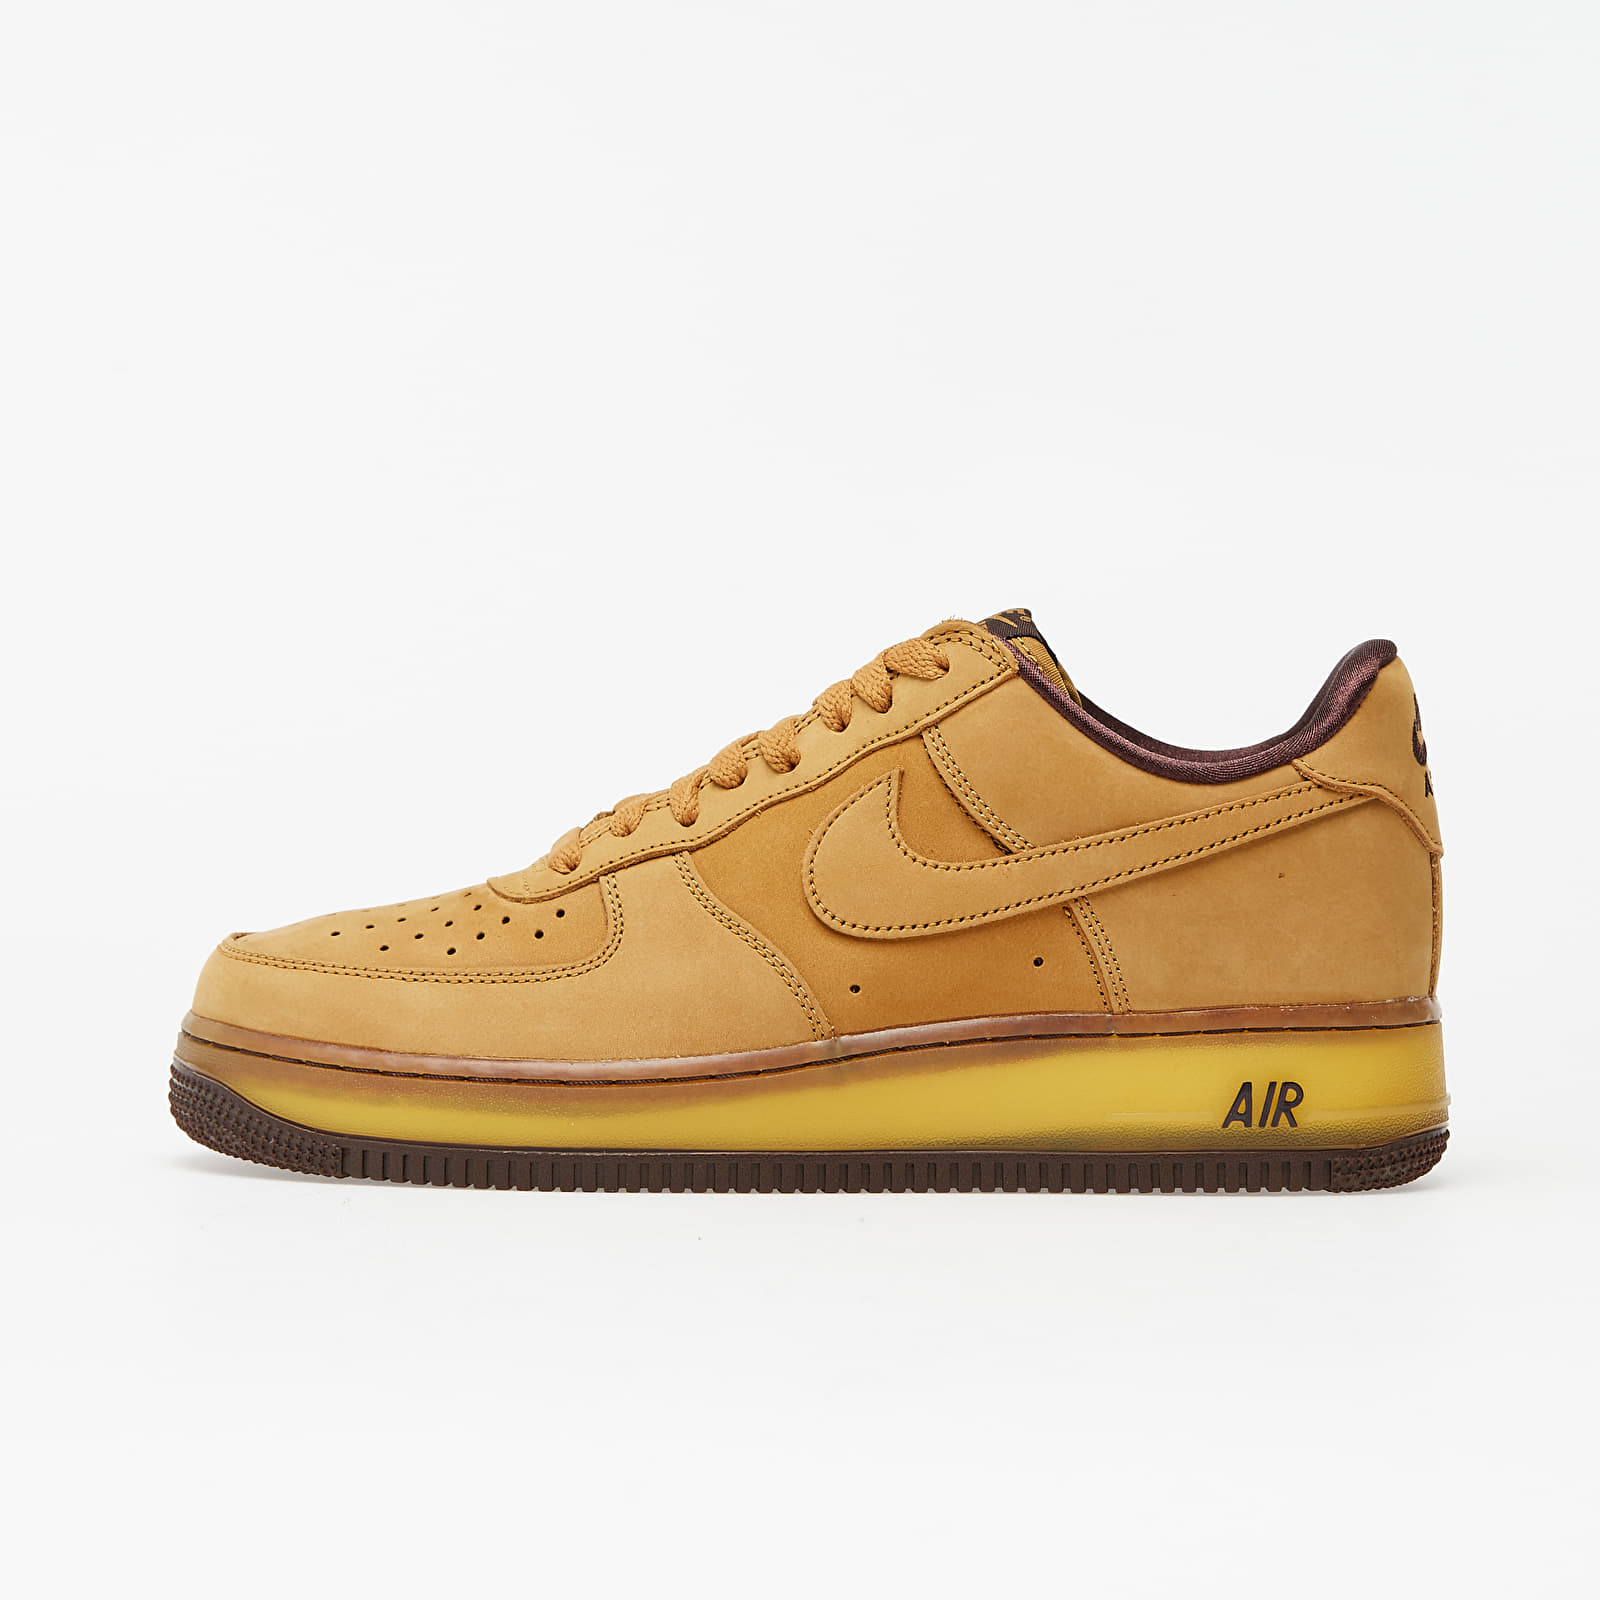 Nike Air Force 1 Low Retro SP Wheat/ Wheat-Dark Mocha EUR 37.5